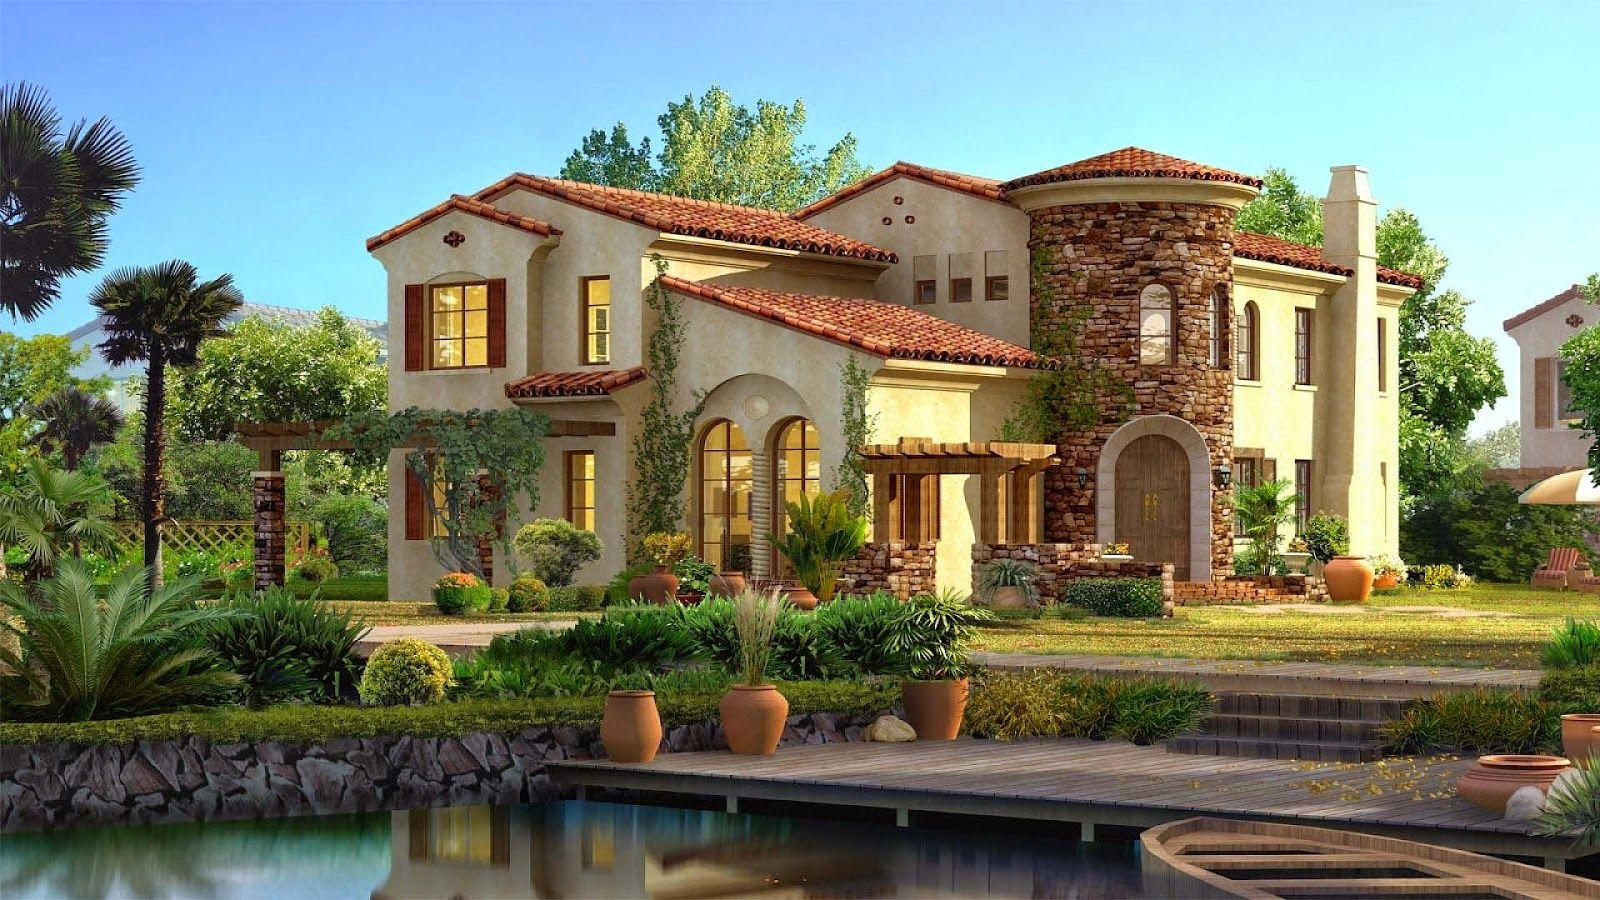 Beautiful Houses Pictures For Pc Free Download Online Fun